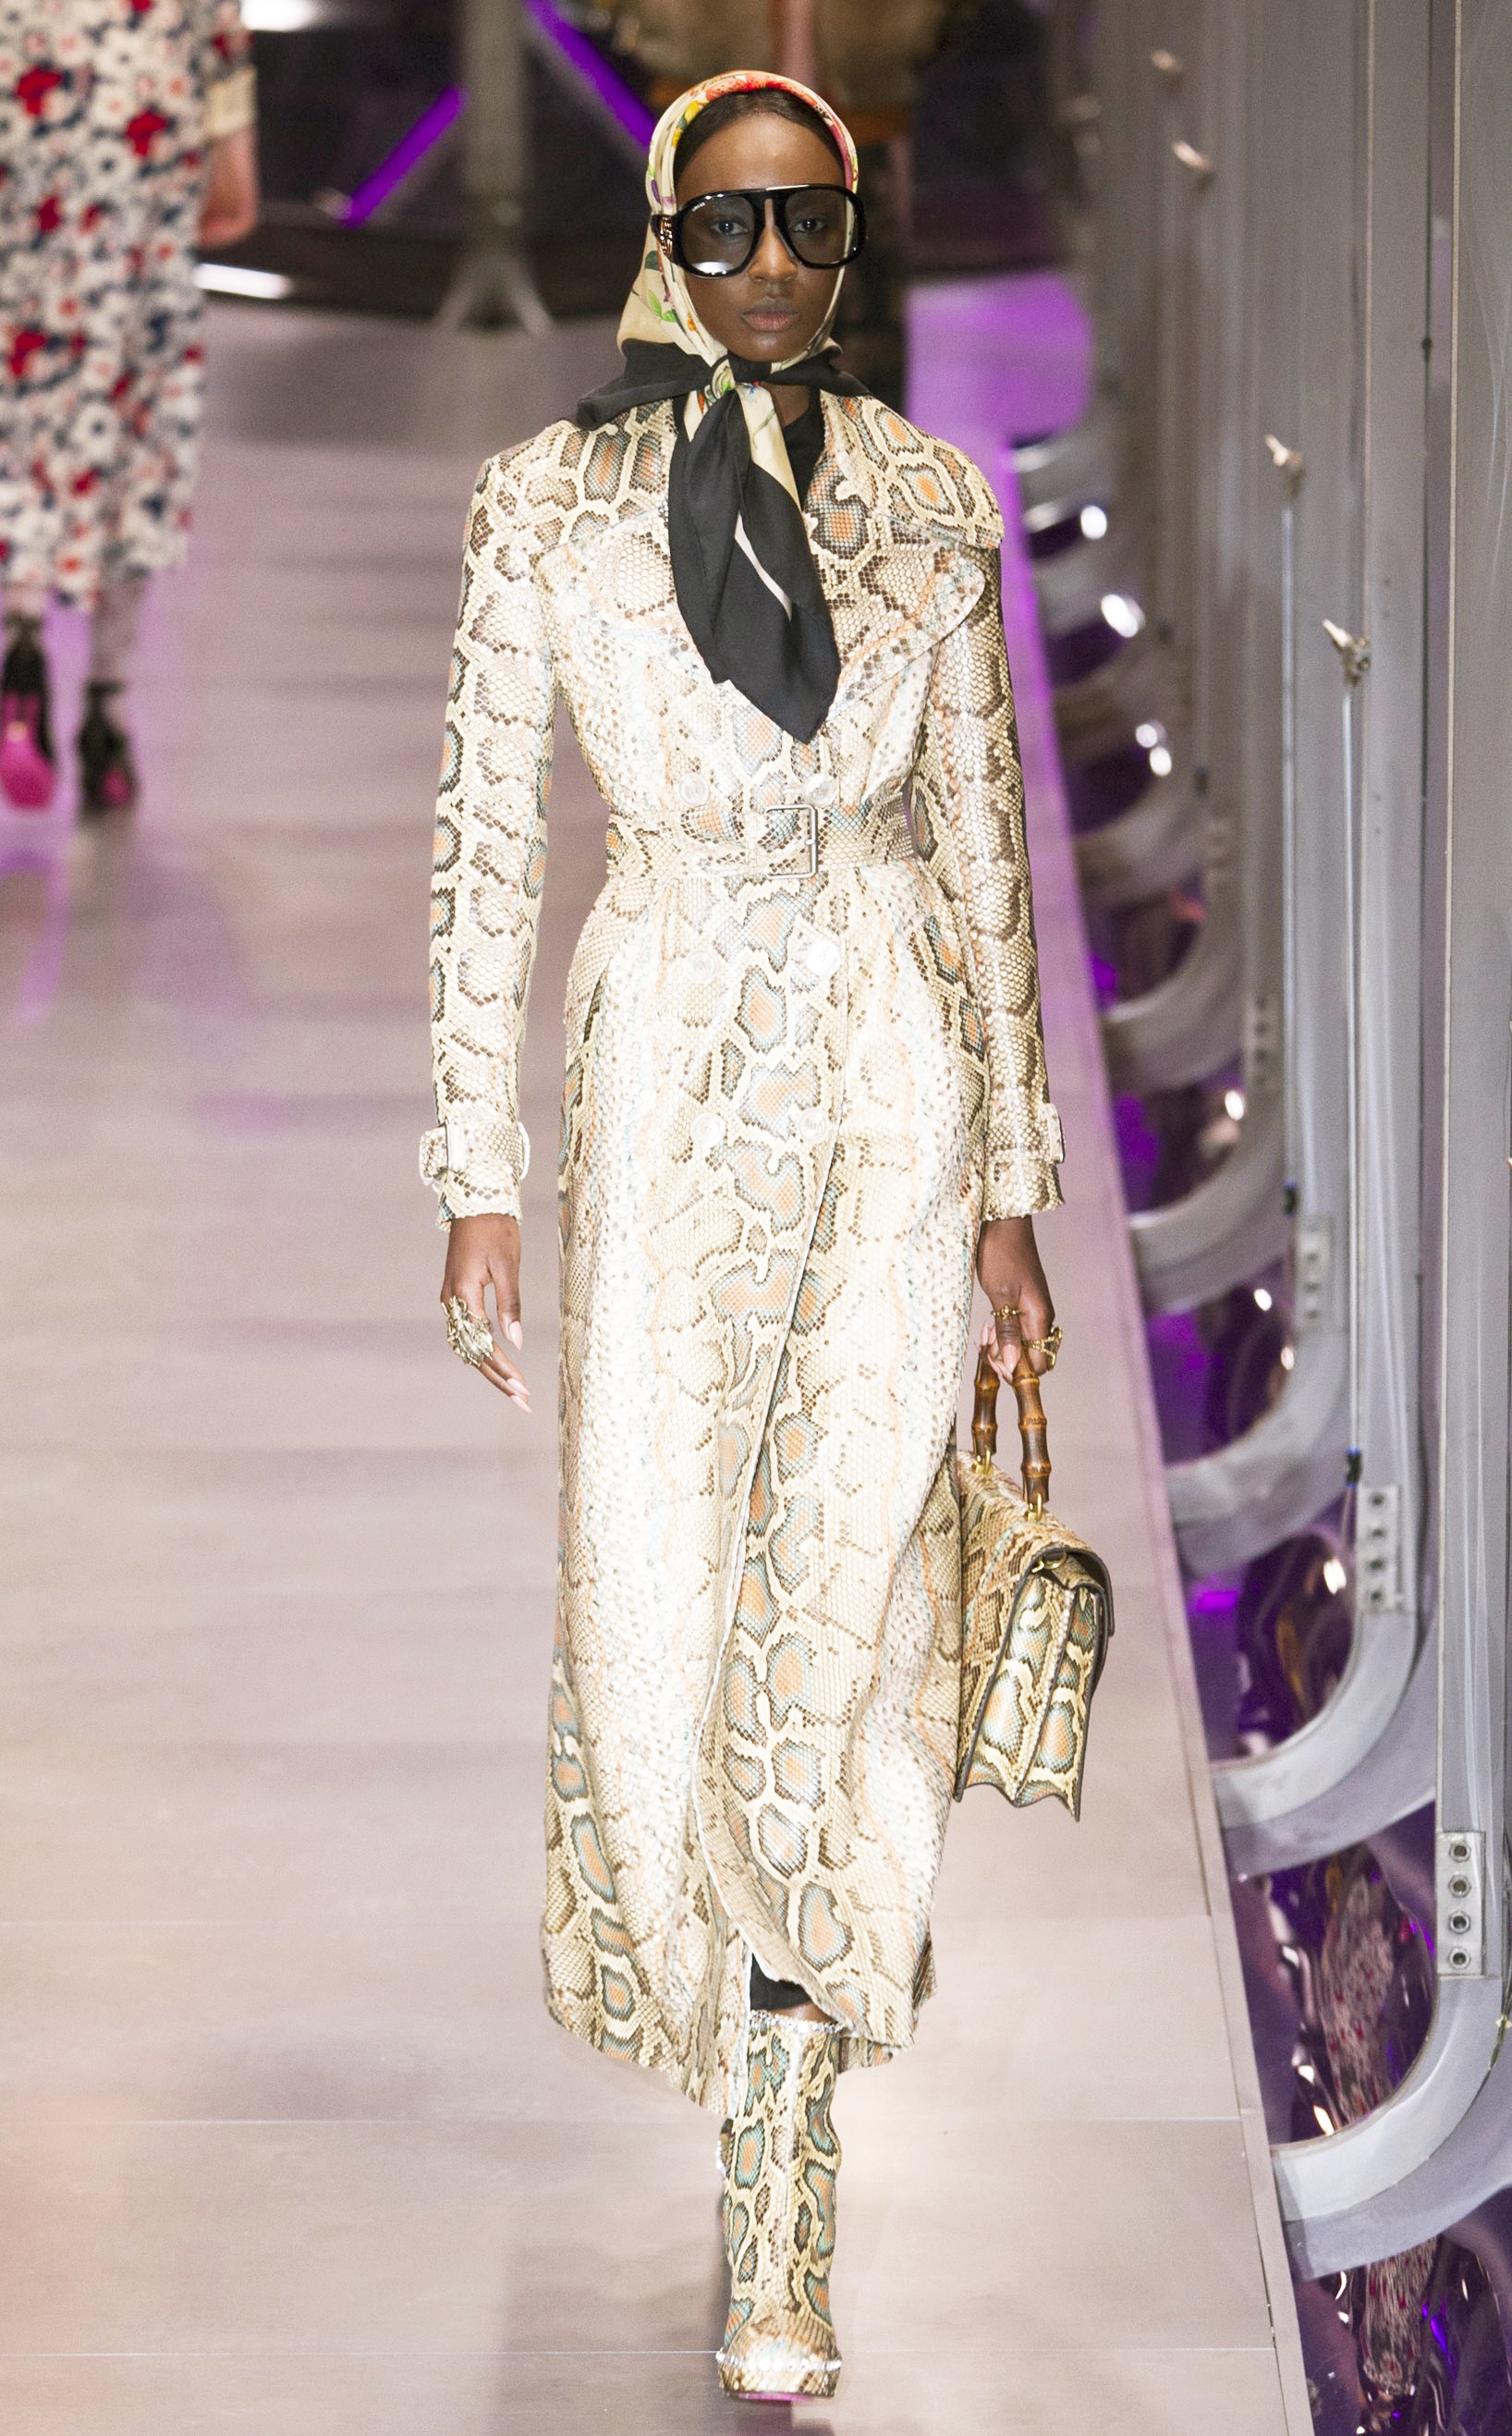 gucci fall 2017, red carpet ready - fab five lifestyle